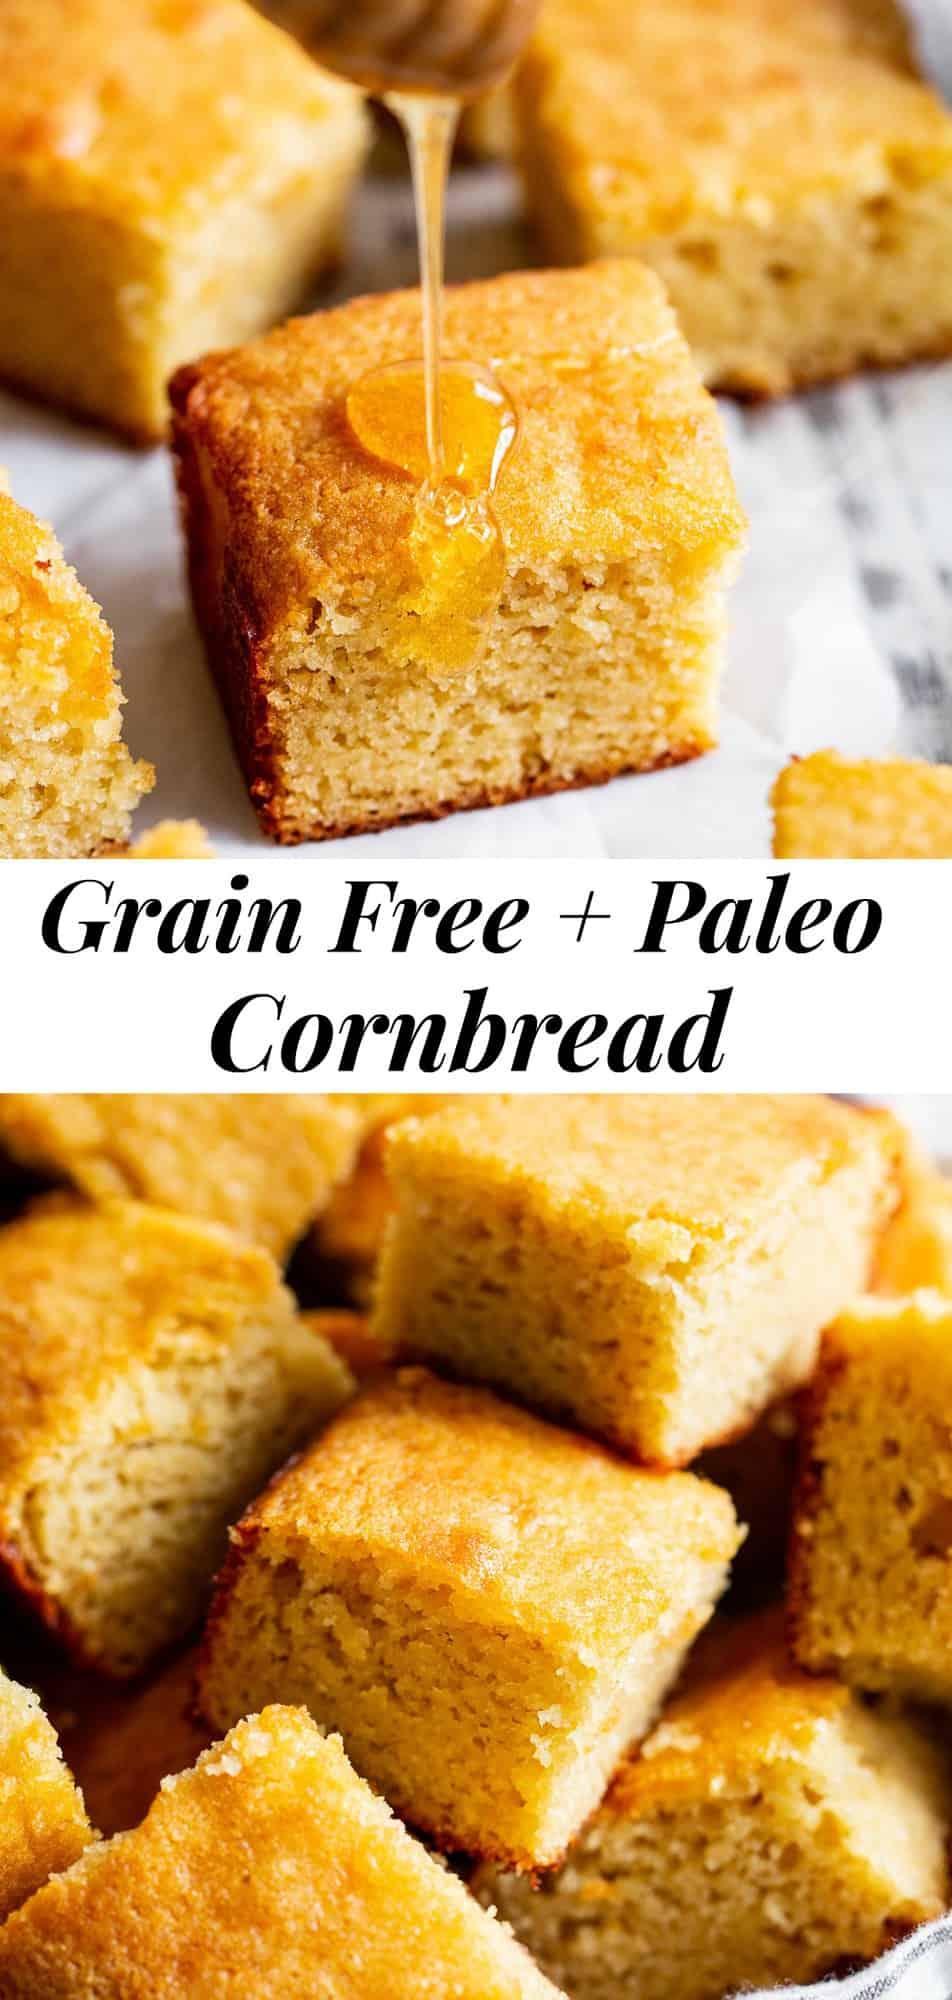 This paleo cornbread is totally gluten free, grain free, dairy free and refined sugar free but tastes exactly like the real deal. It's perfect to serve with a meal or with breakfast with a little ghee or vegan butter and a drizzle of honey! #paleo #glutenfree #cleaneating #grainfree